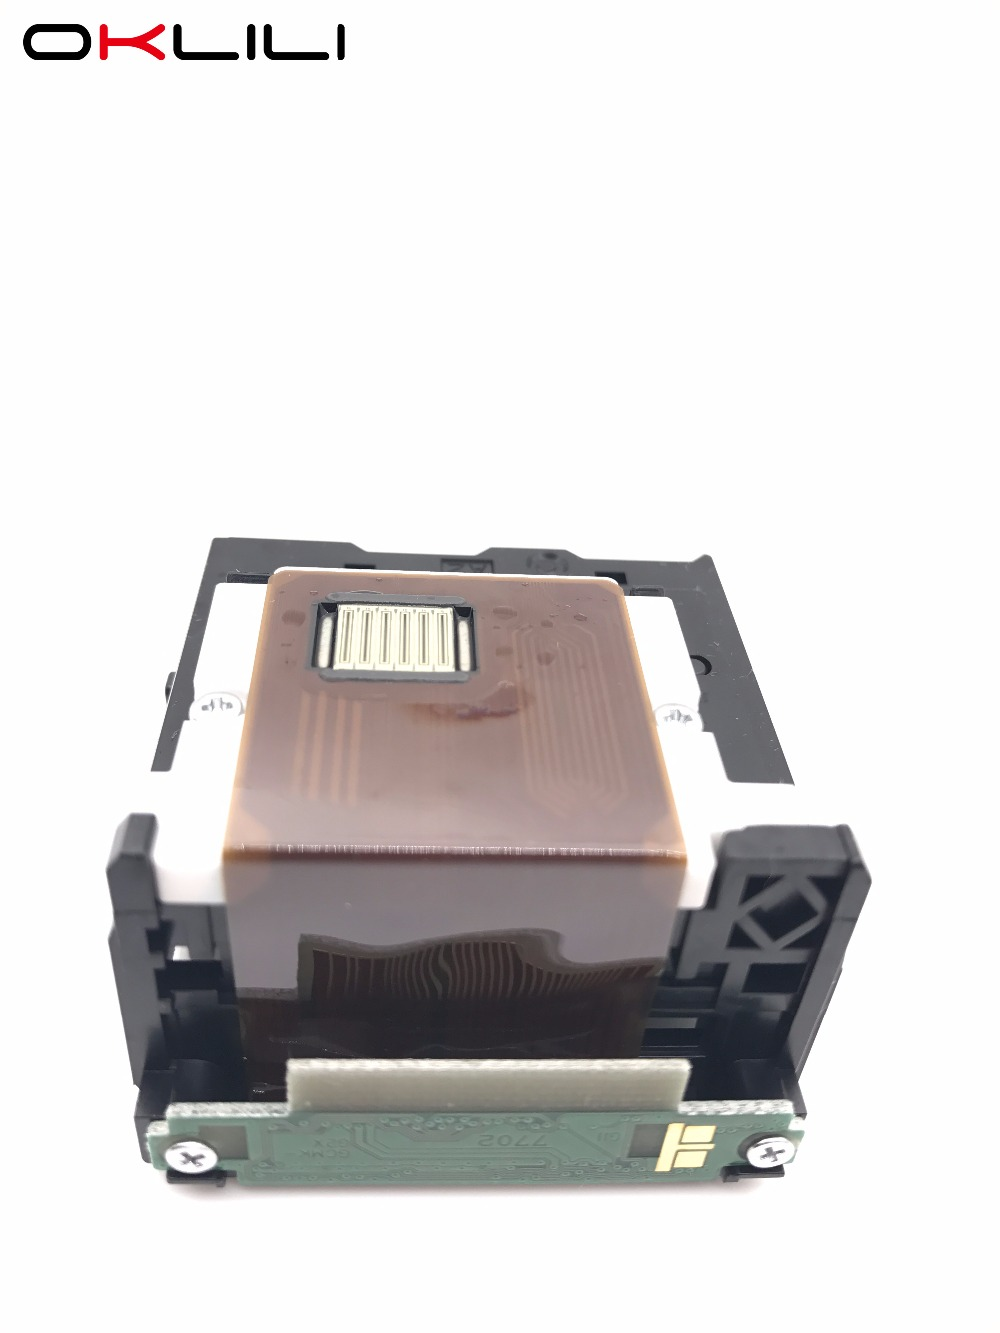 OKLILI ORIGINAL NEW QY6-0069 QY6-0069-000 Printhead Print Head Printer Head for Canon mini260 mini320 new original print head qy6 0061 00 printhead for canon ip4300 ip5200 ip5200r mp600 mp600r mp800 mp800r mp830 plotter